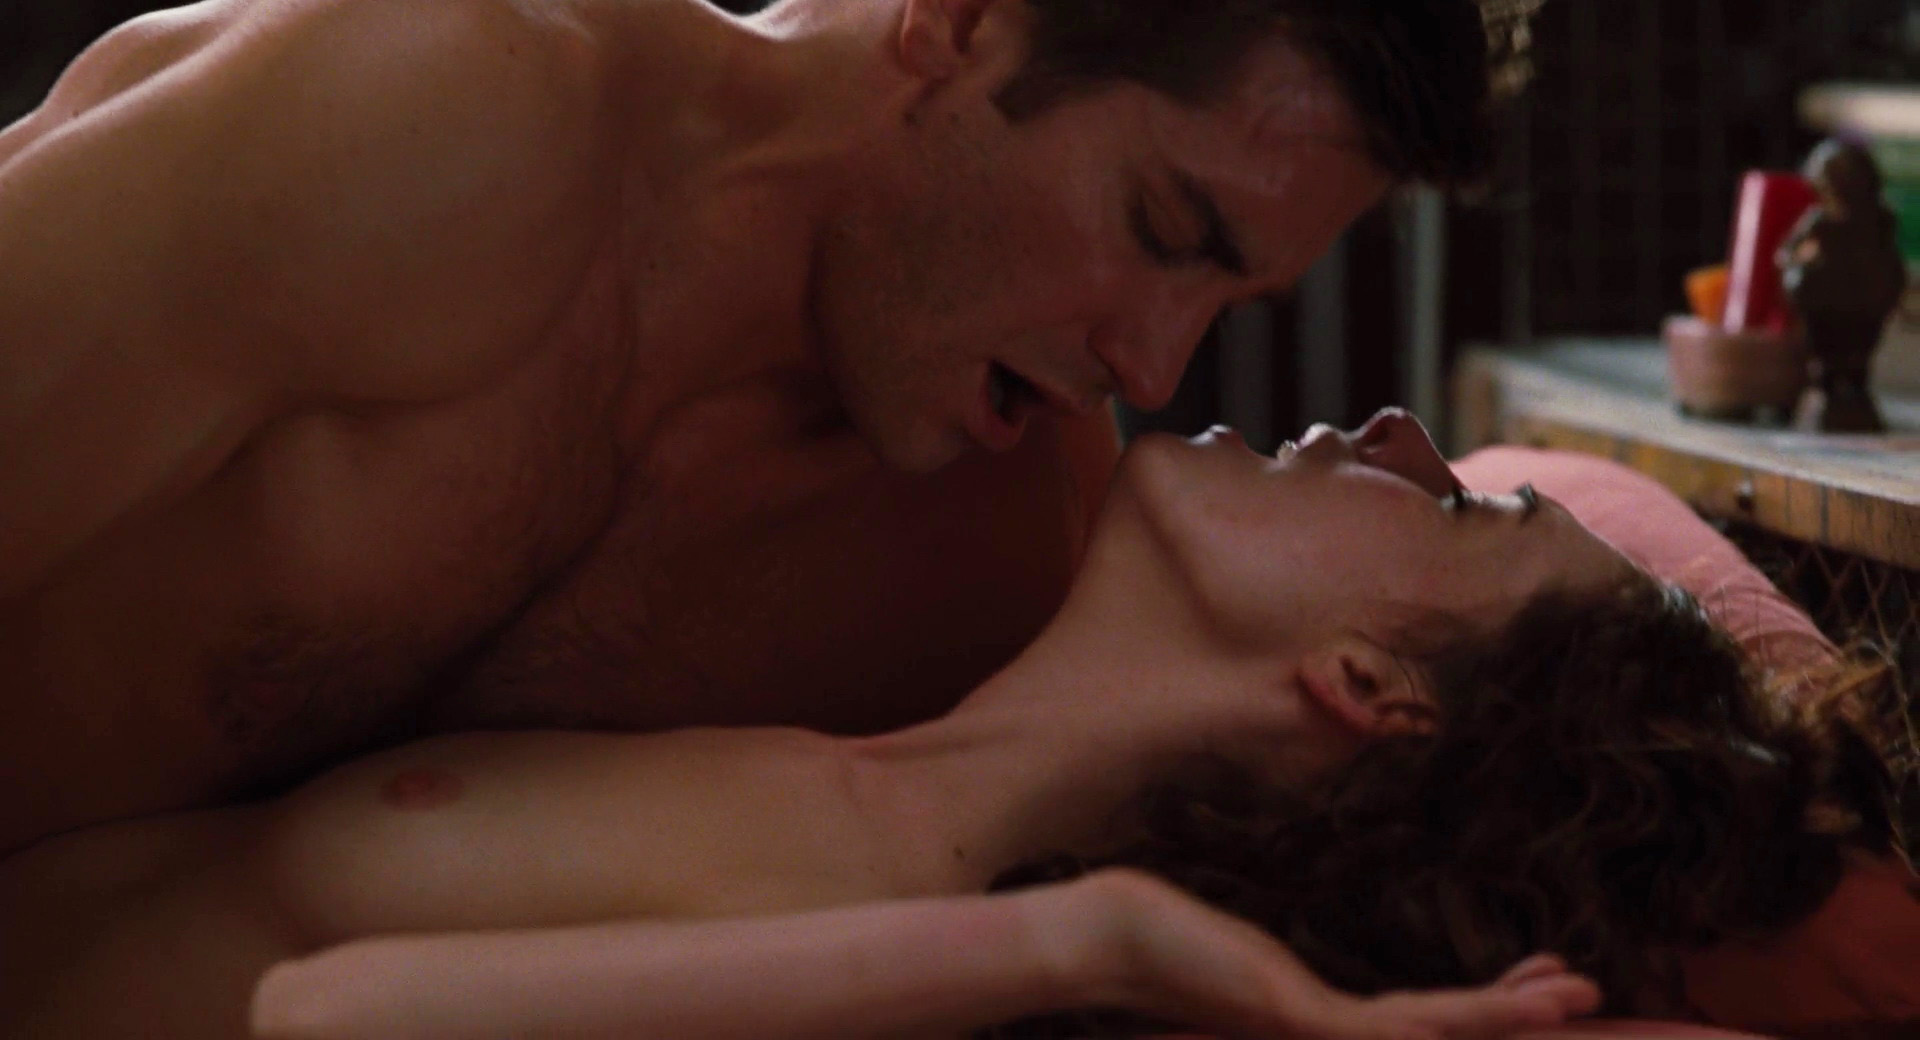 Anne hathaway nude scene love and other drugs